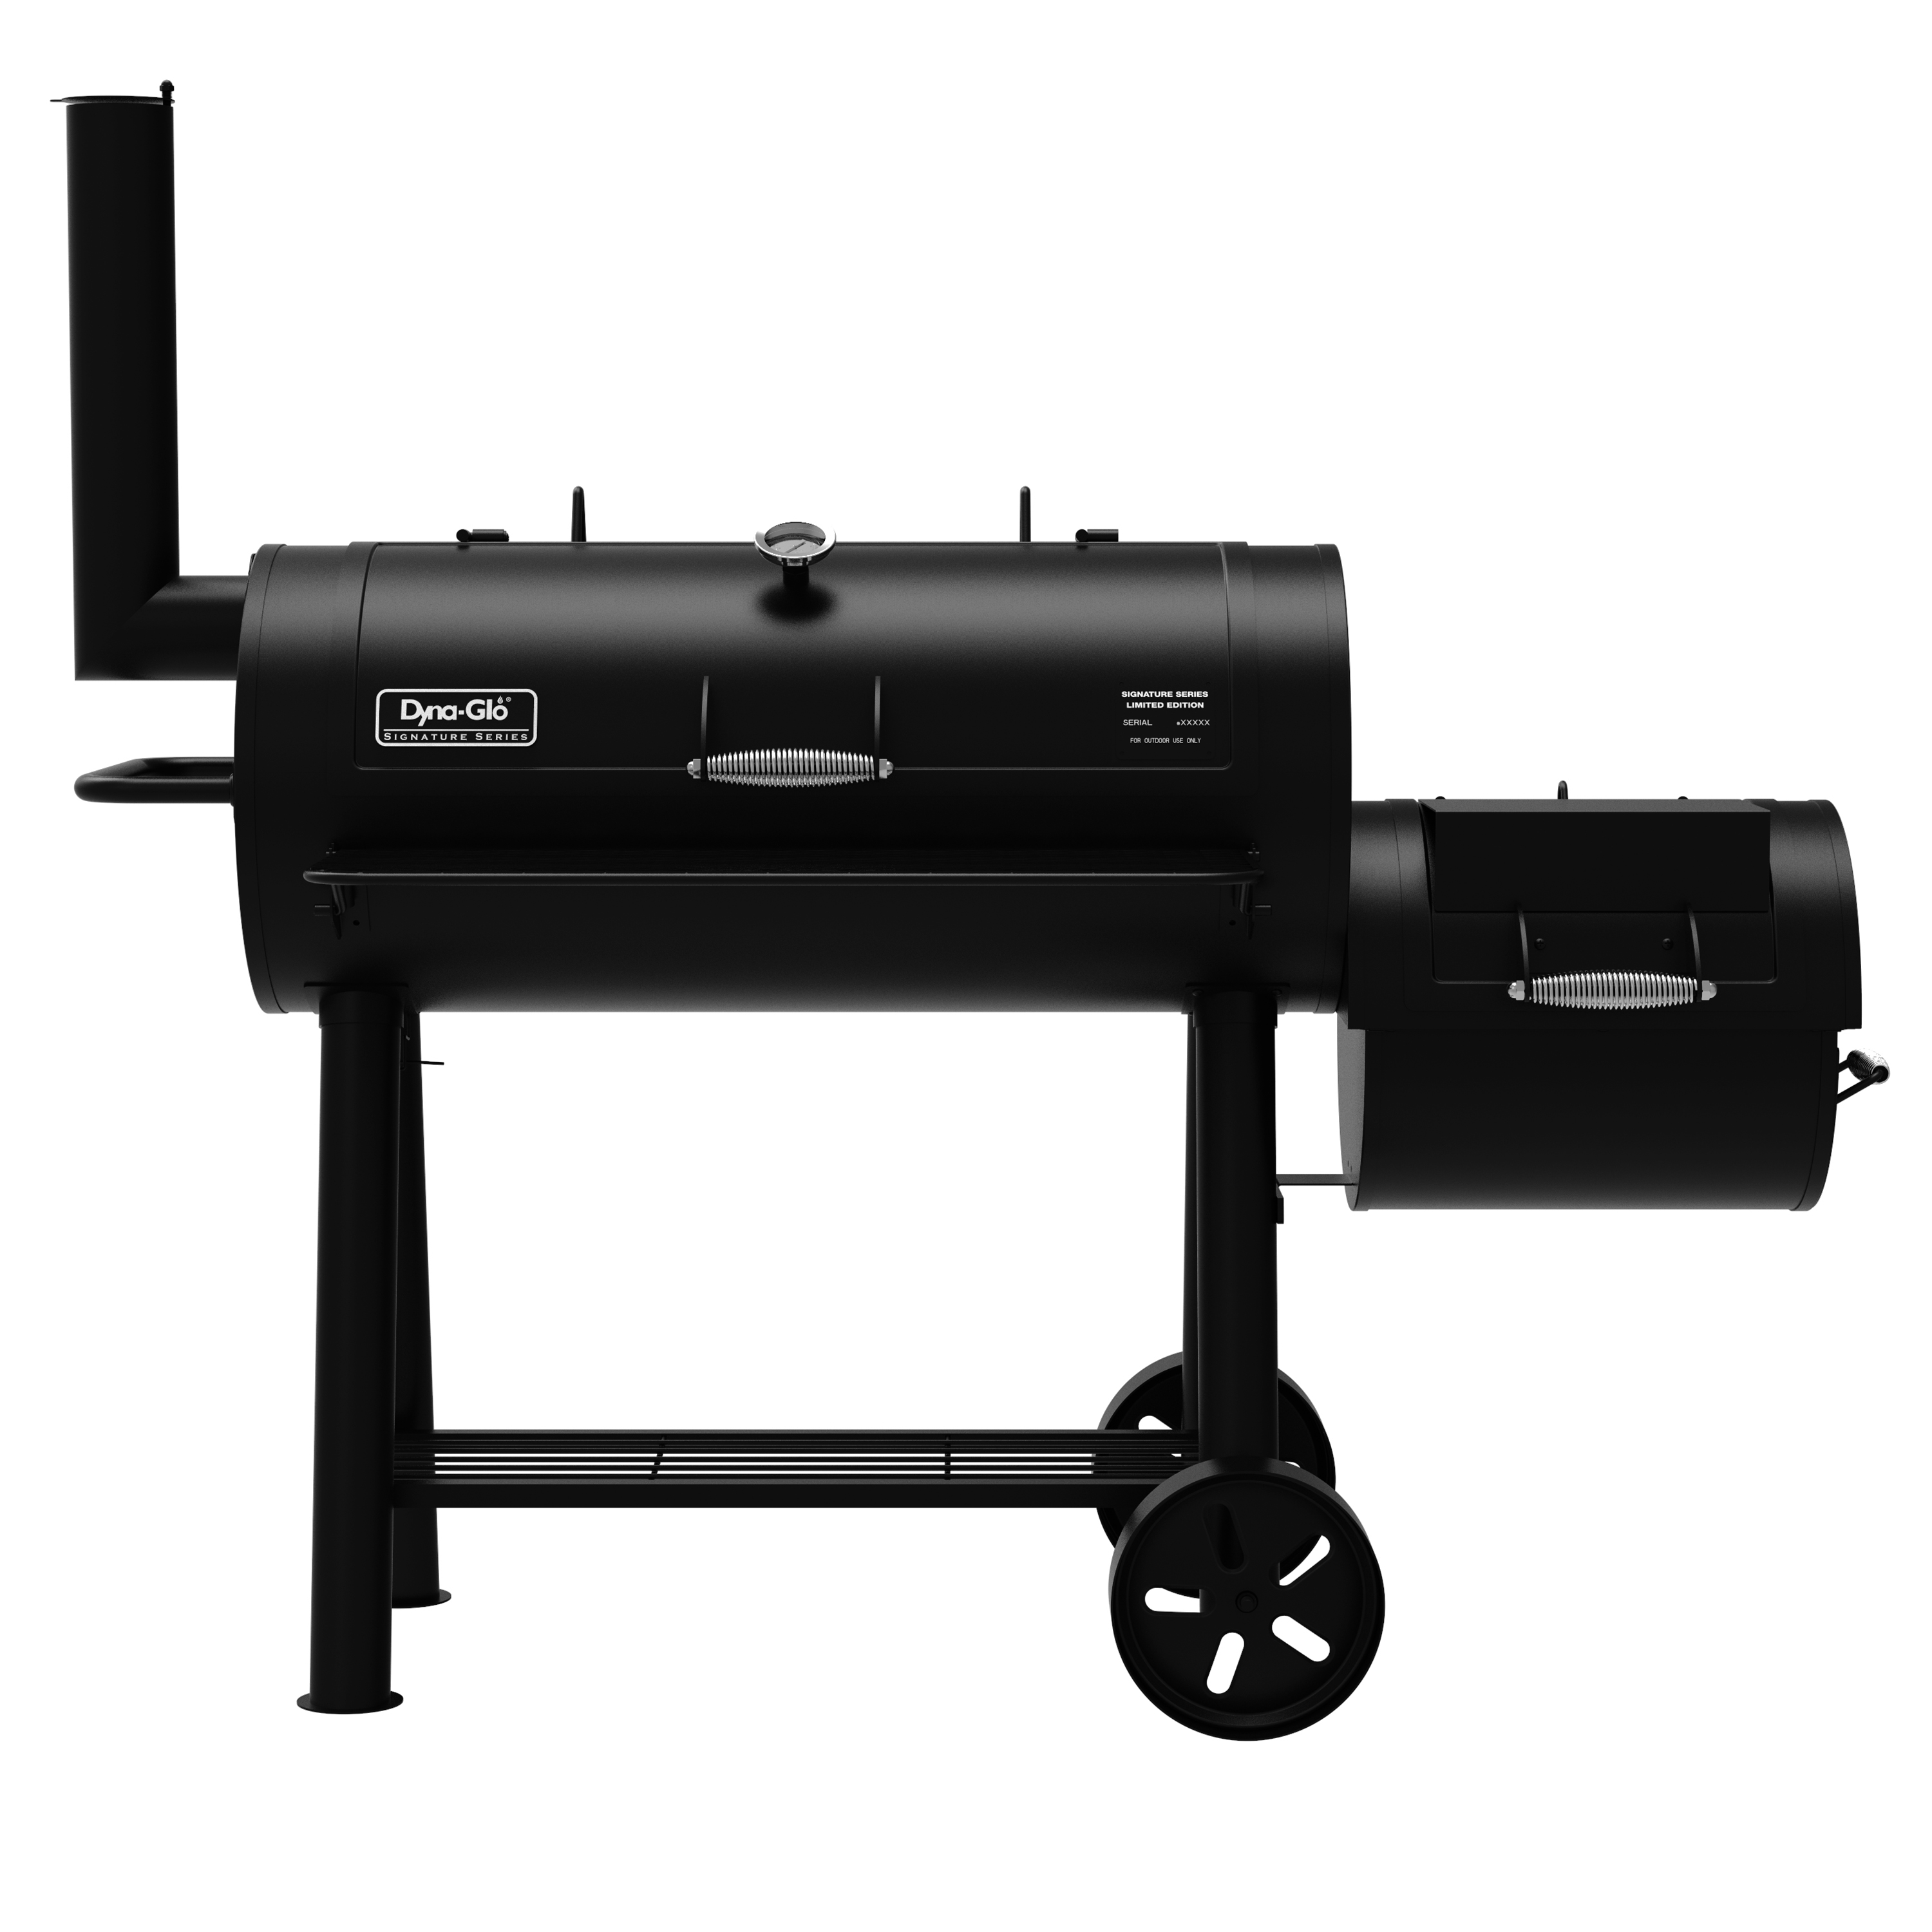 Dyna-Glo Signature Series DGSS962CBO-D Barrel Charcoal Grill & Side Firebox